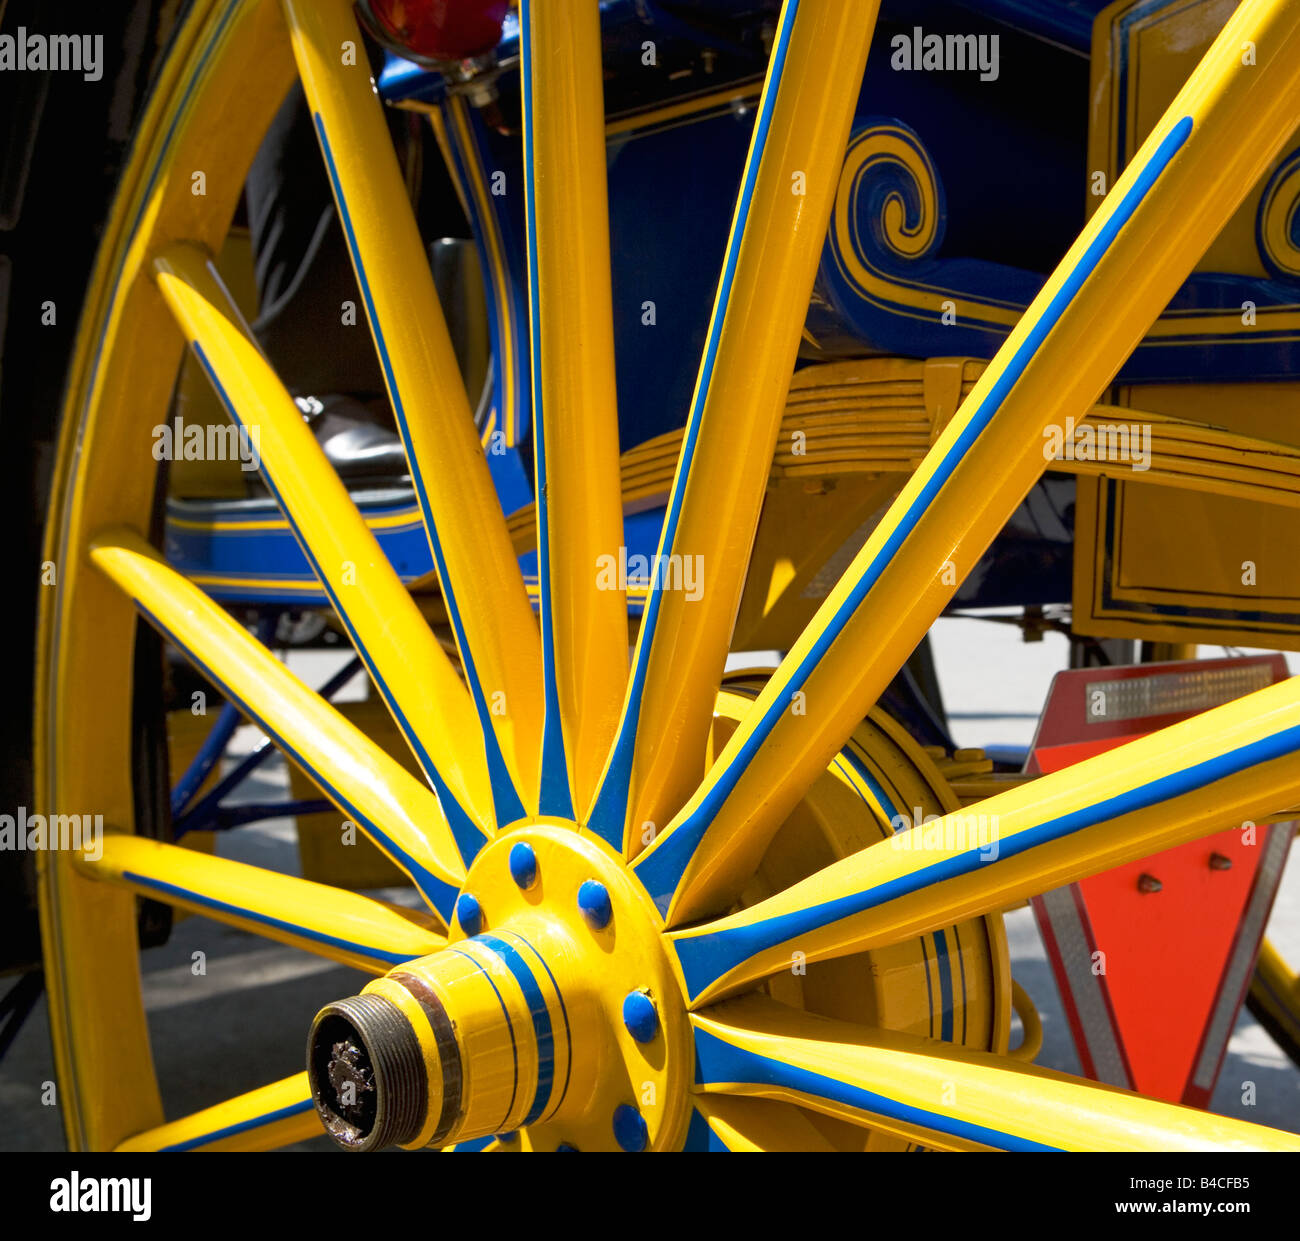 Red Wagon Wheel Stock Photos & Red Wagon Wheel Stock Images - Alamy